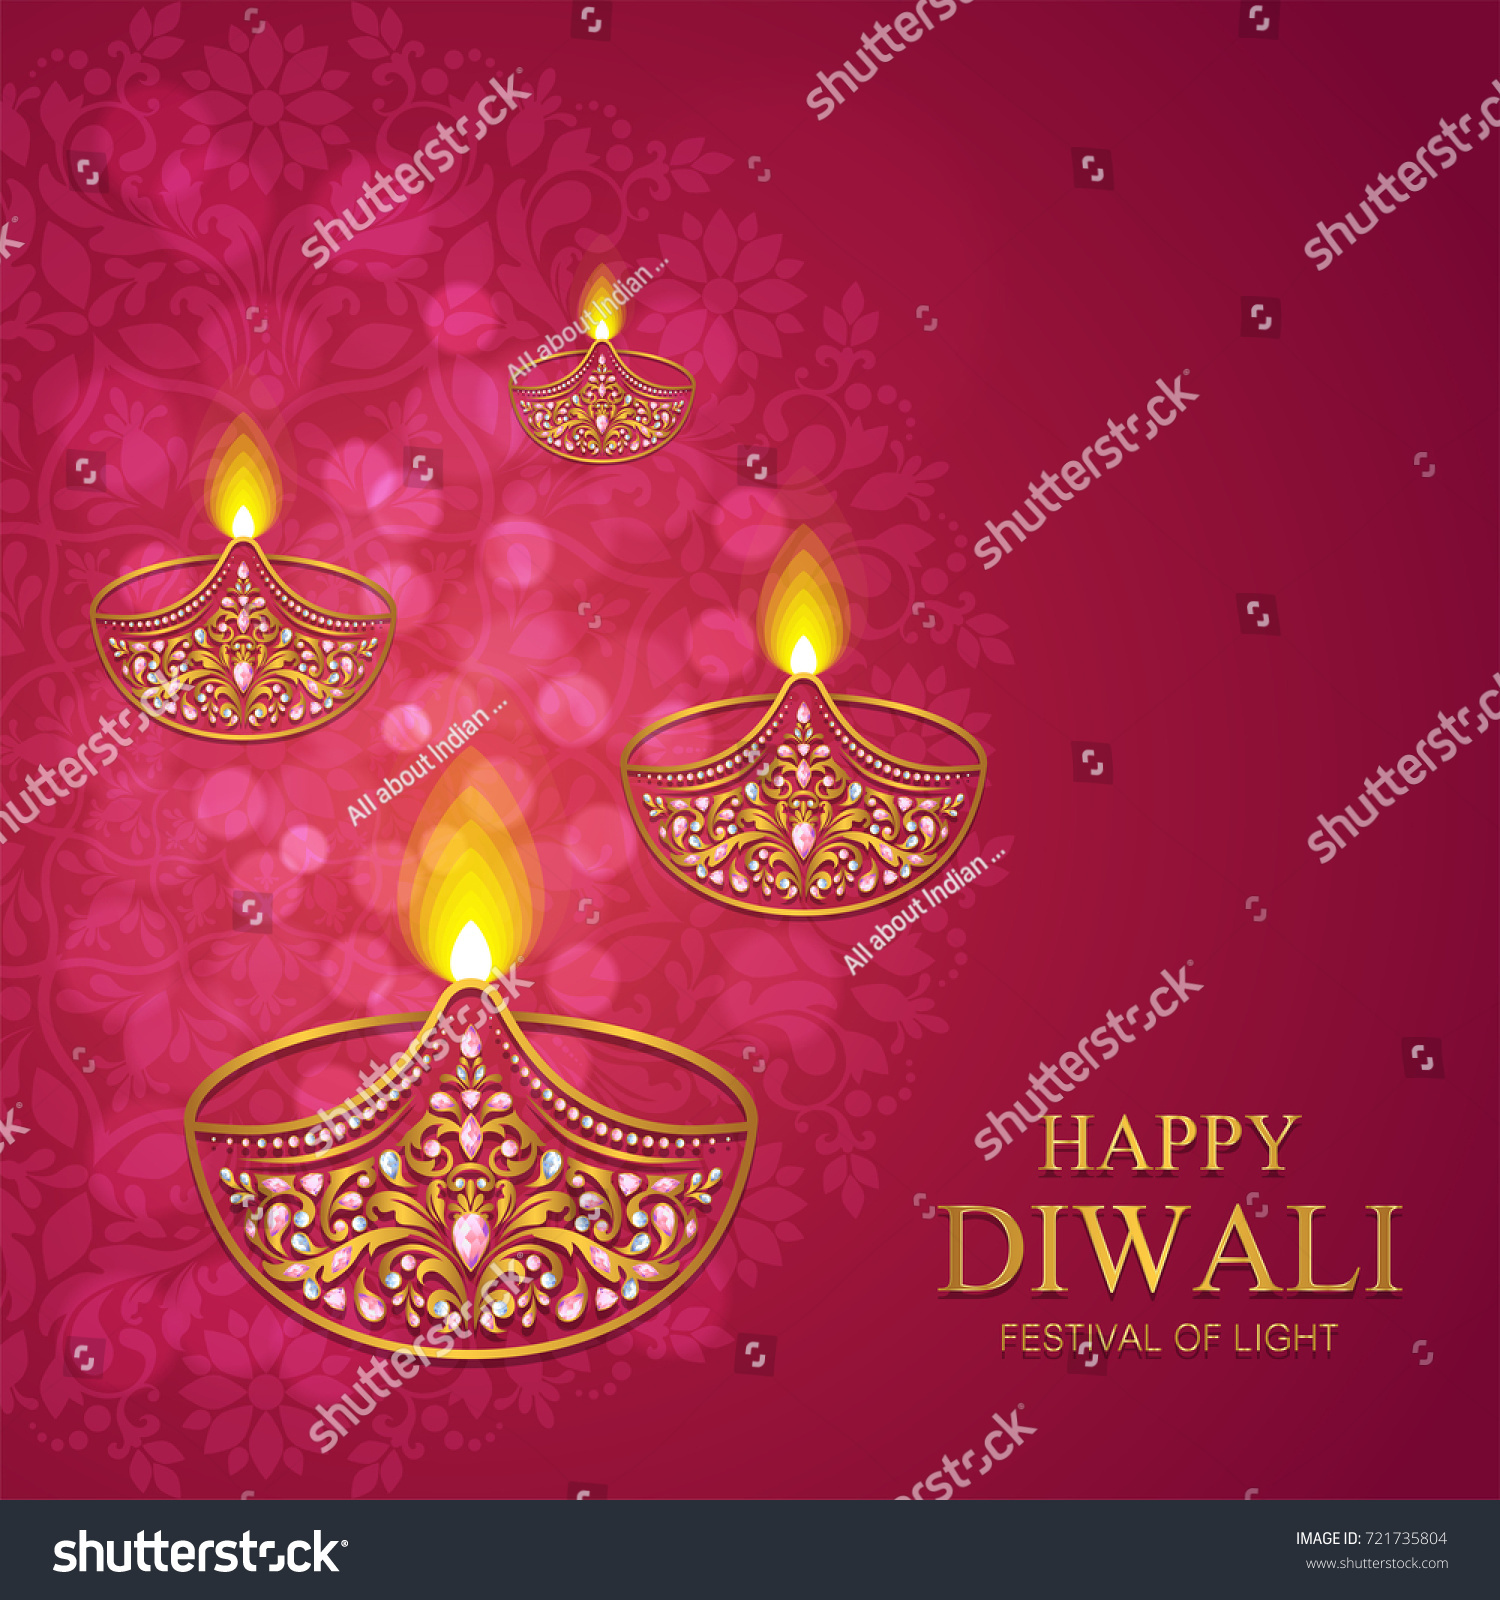 Happy Diwali Festival Card With Gold Patterned And Crystals On Paper